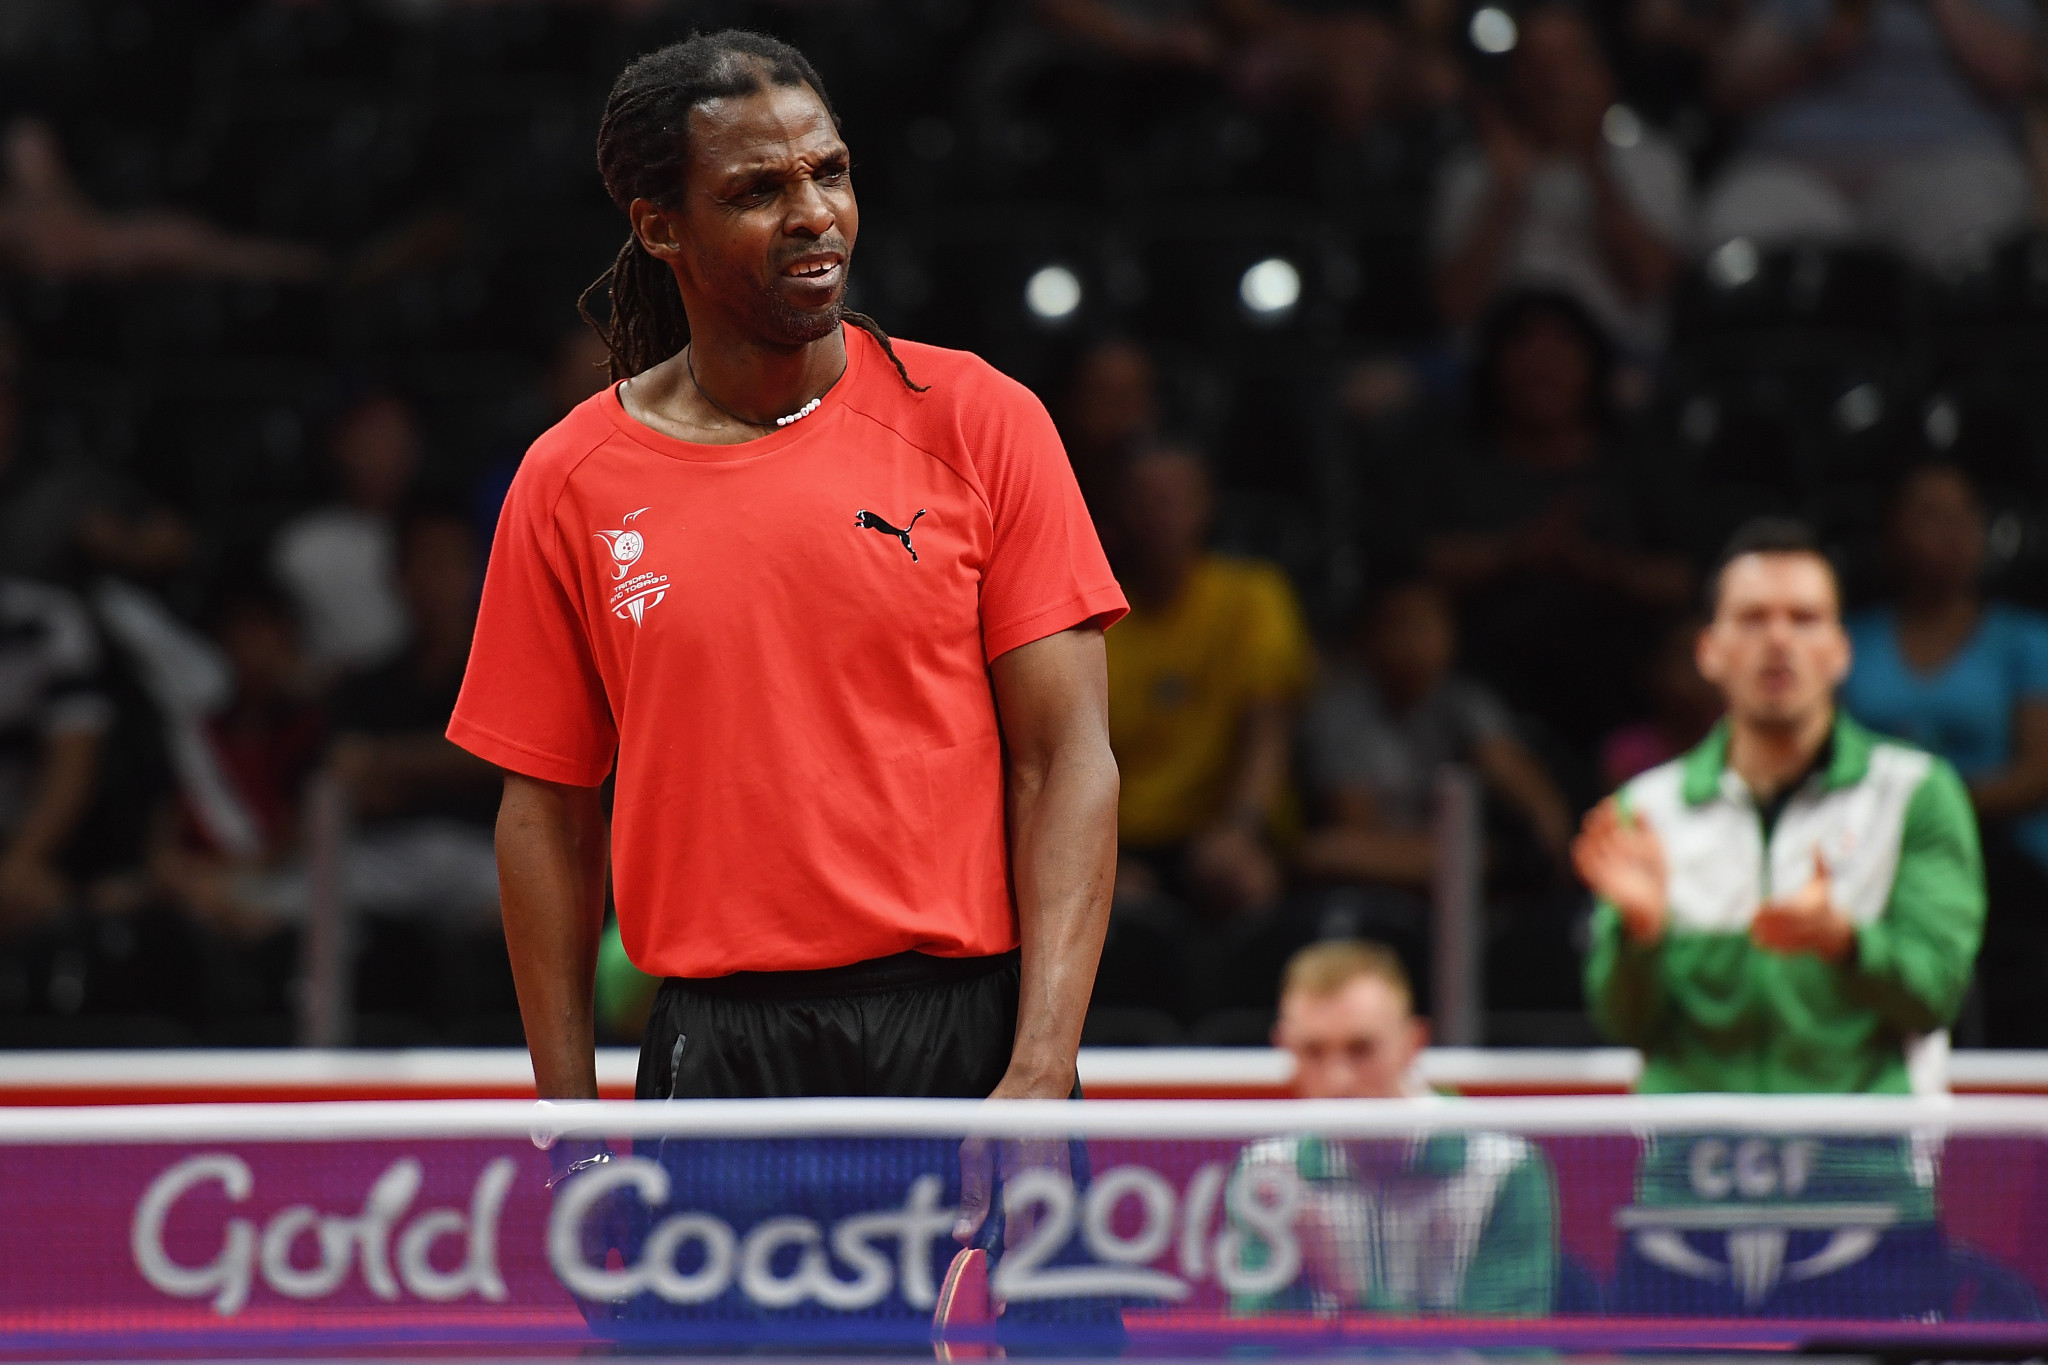 Dexter St Louis appeared at Gold Coast 2018 after a legal battle with the national governing body ©Getty Images